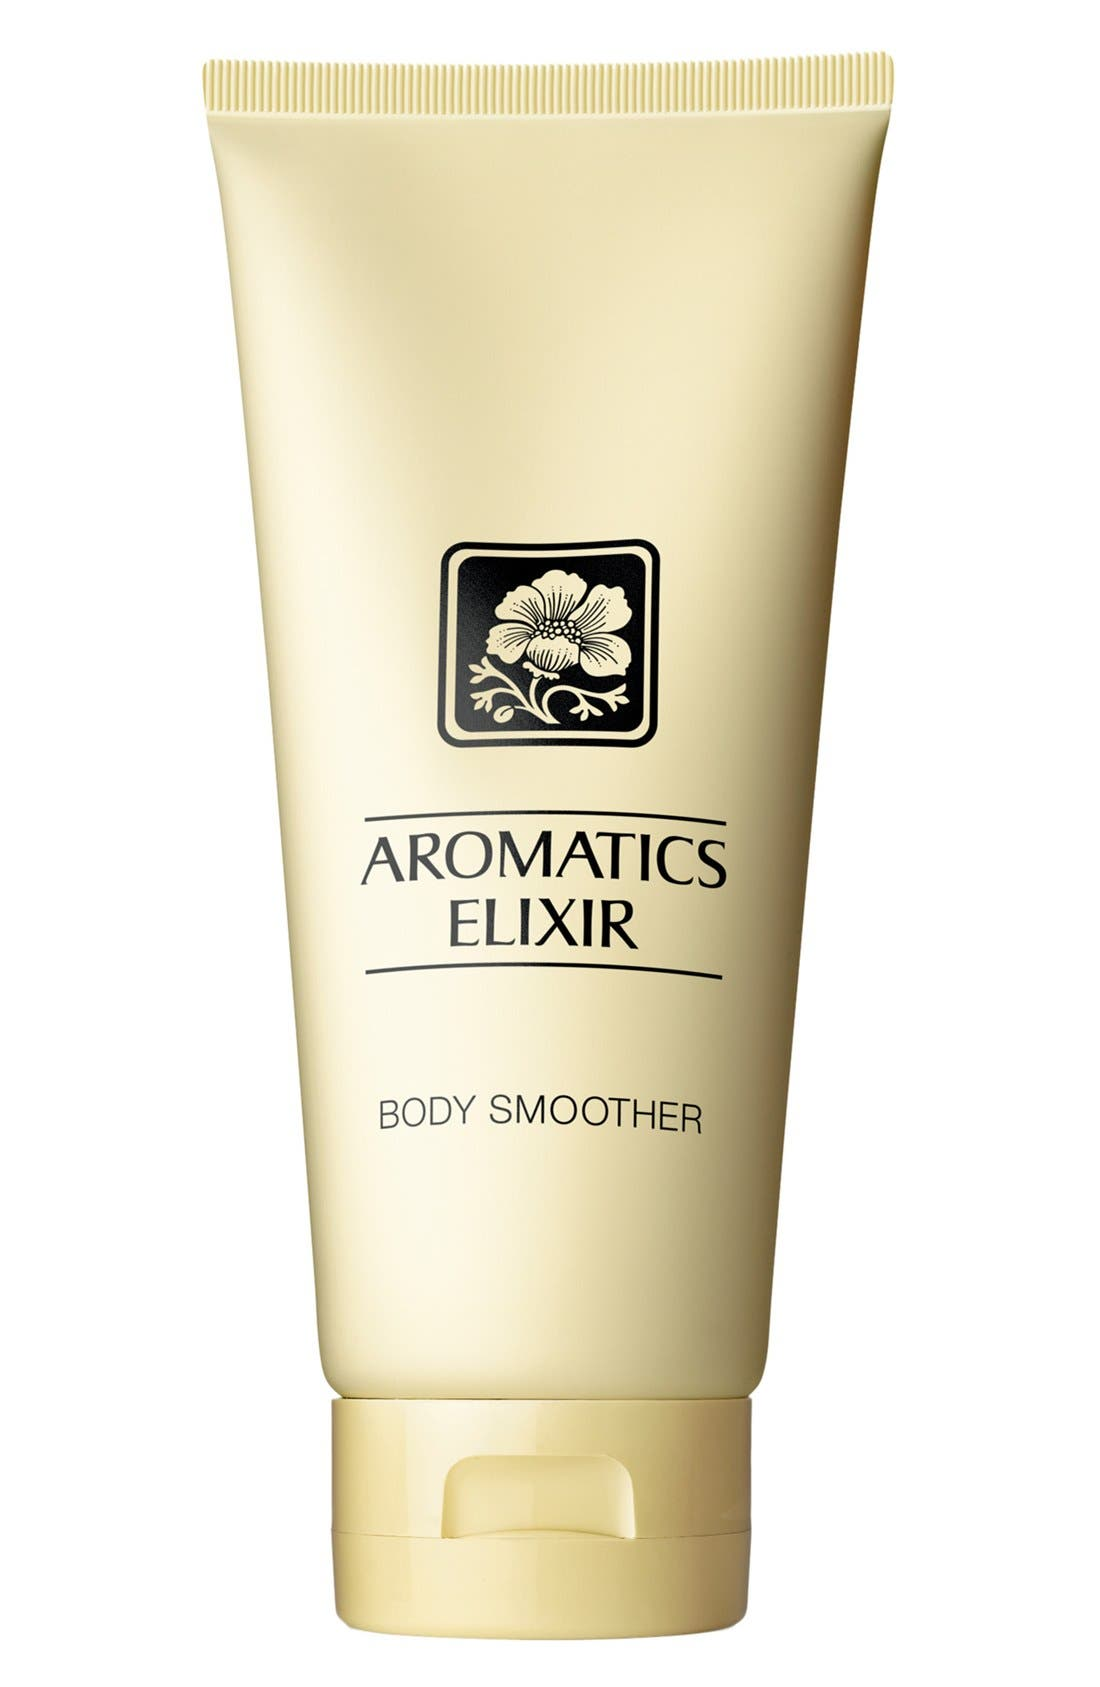 Clinique 'Aromatics Elixir' Body Smoother